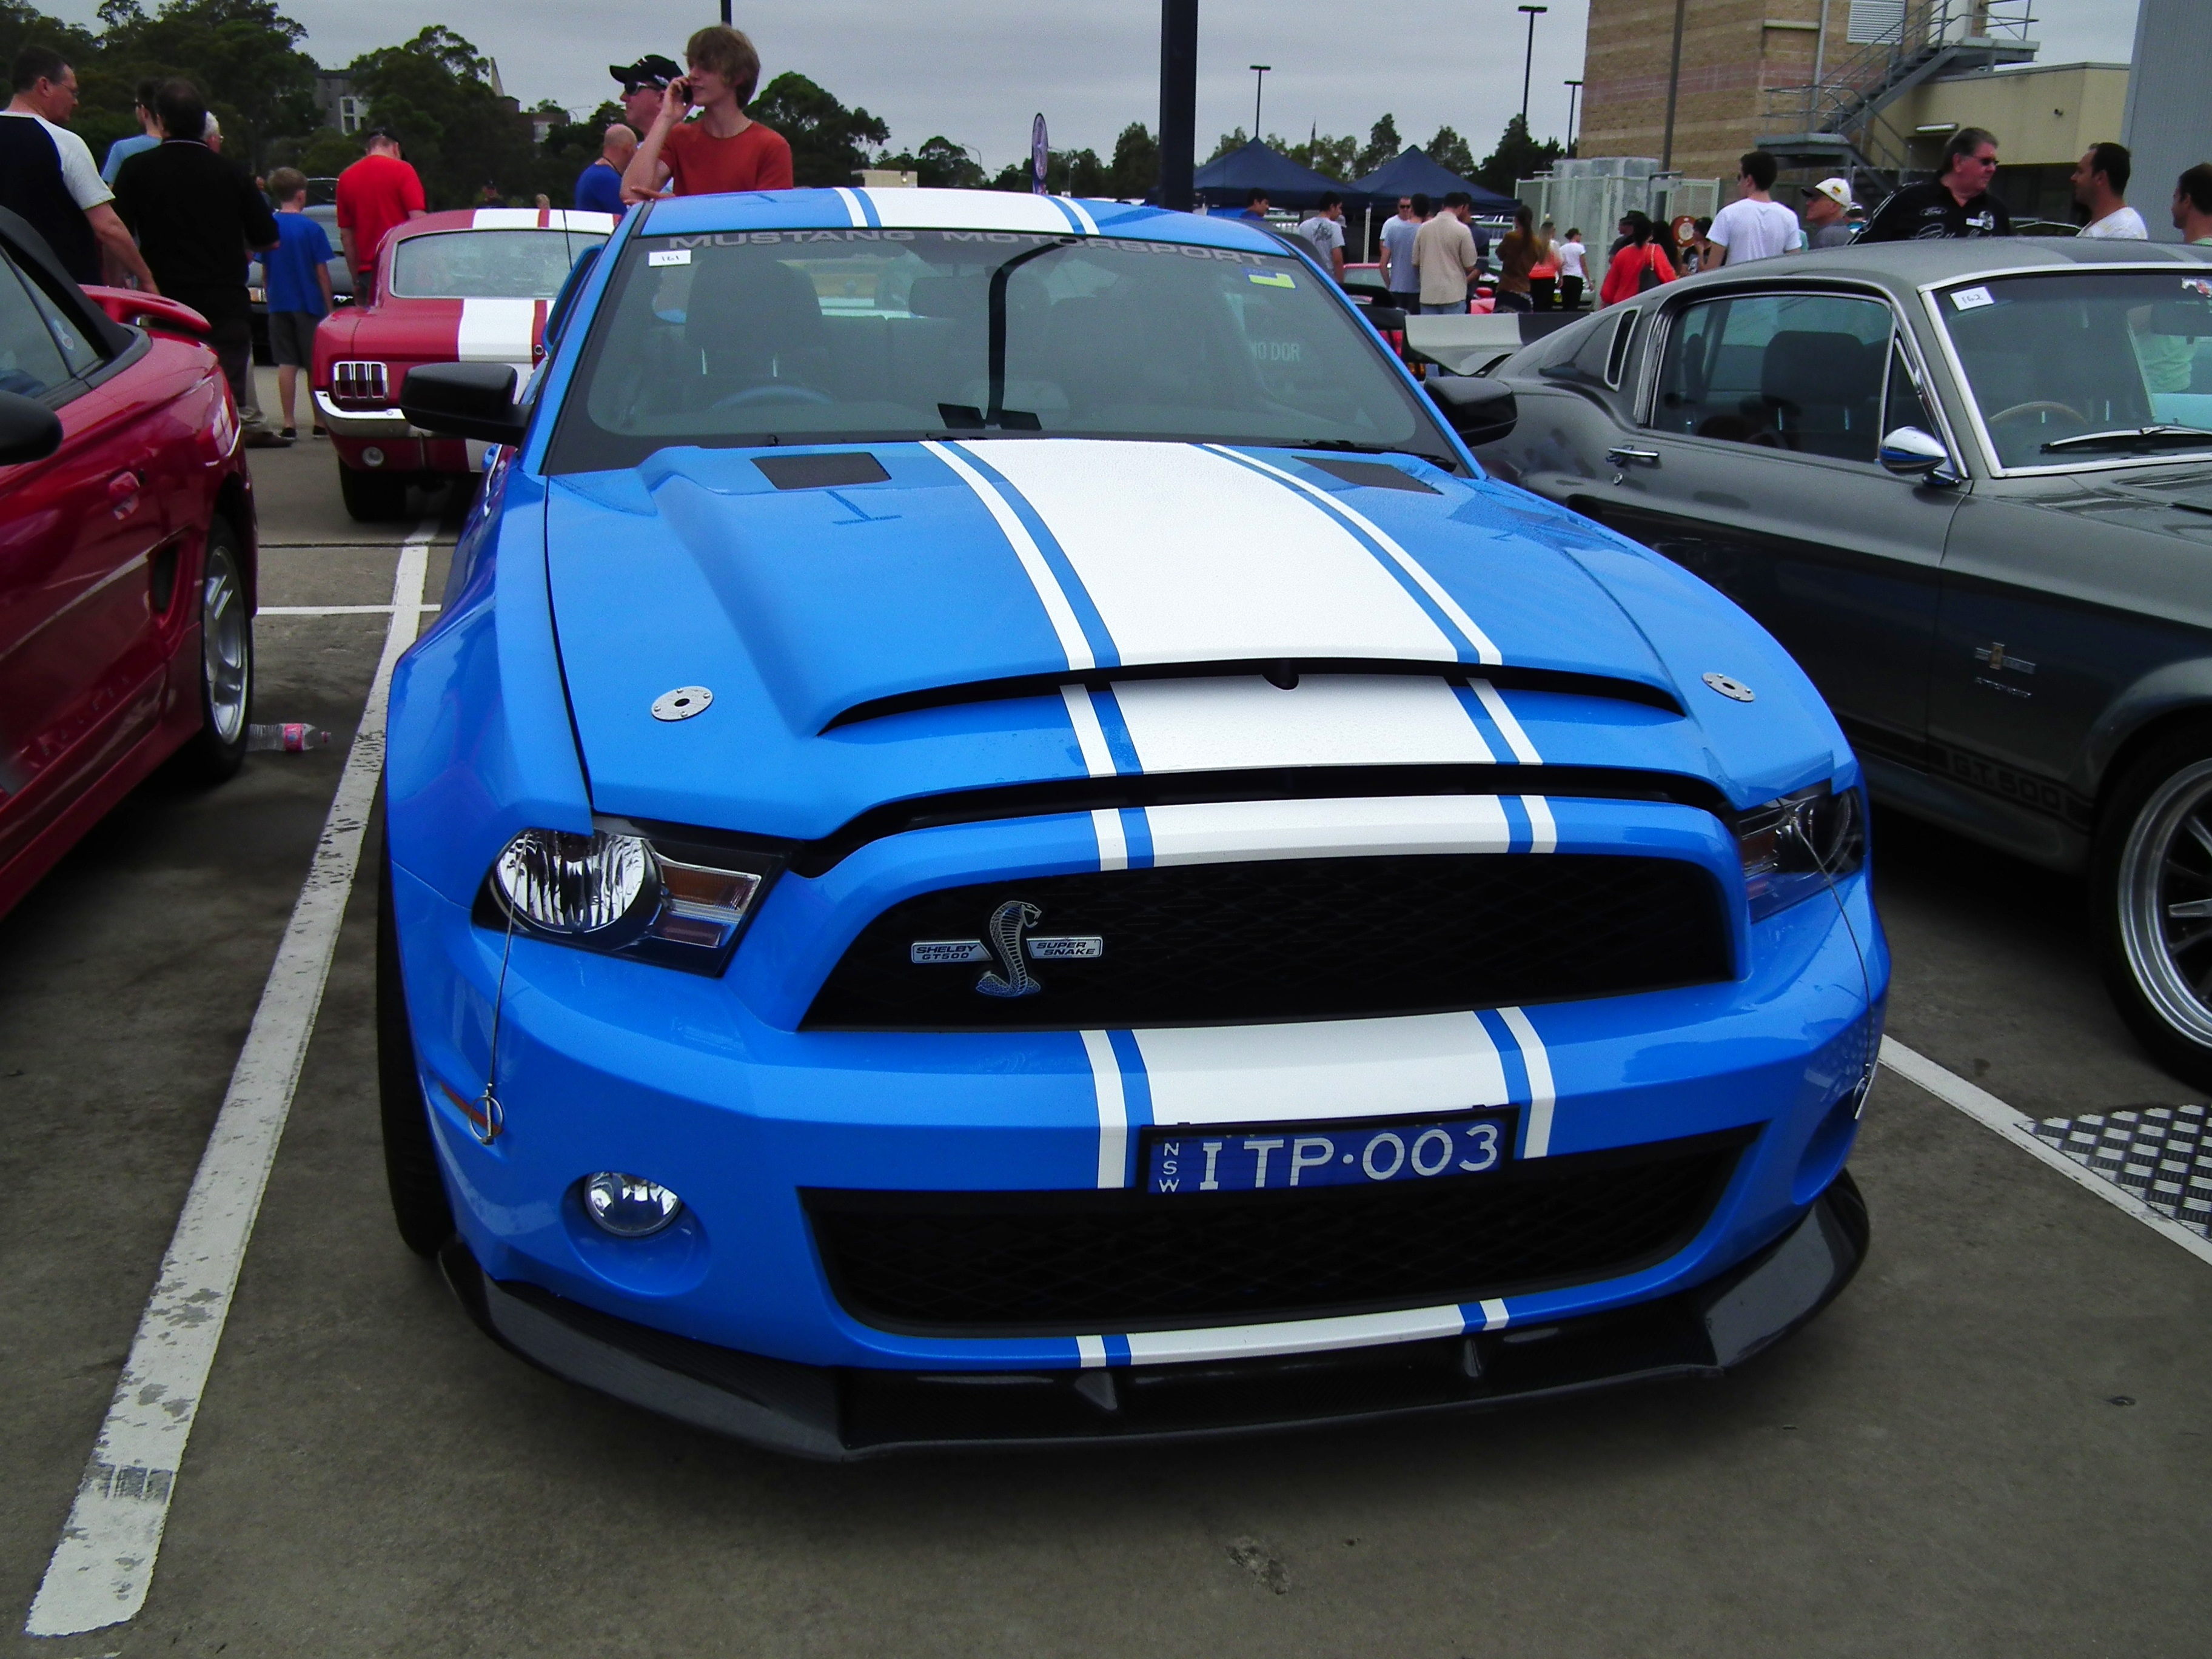 File:2012 Ford Mustang Shelby GT 500 Super Snake coupe (8453119256 ...